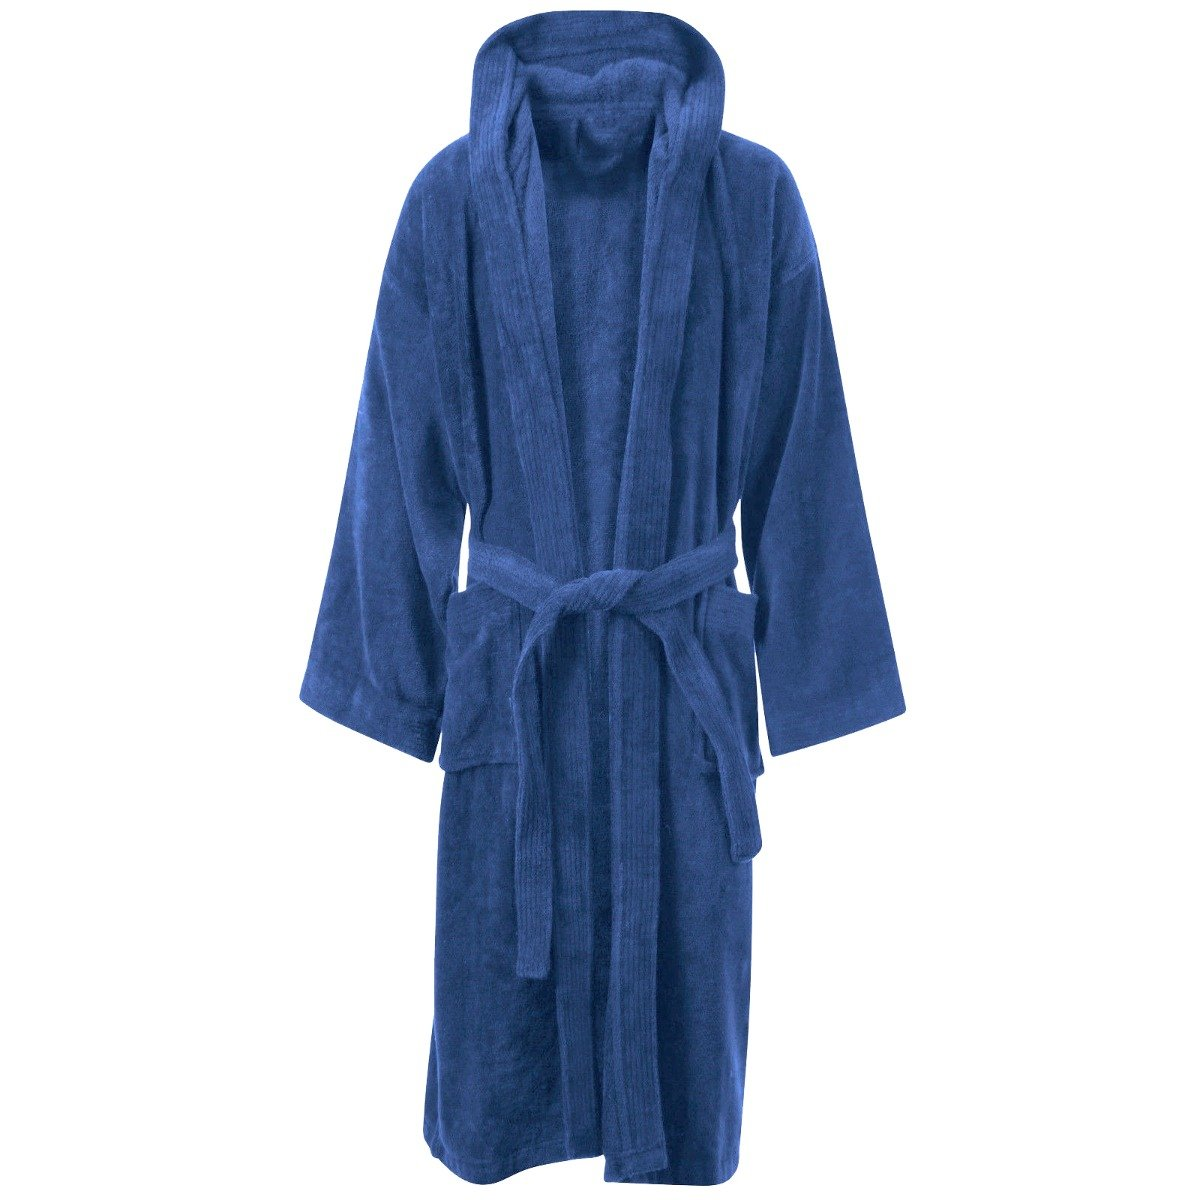 DNM & CO Hooded Cotton Toweling Bathrobe Gown